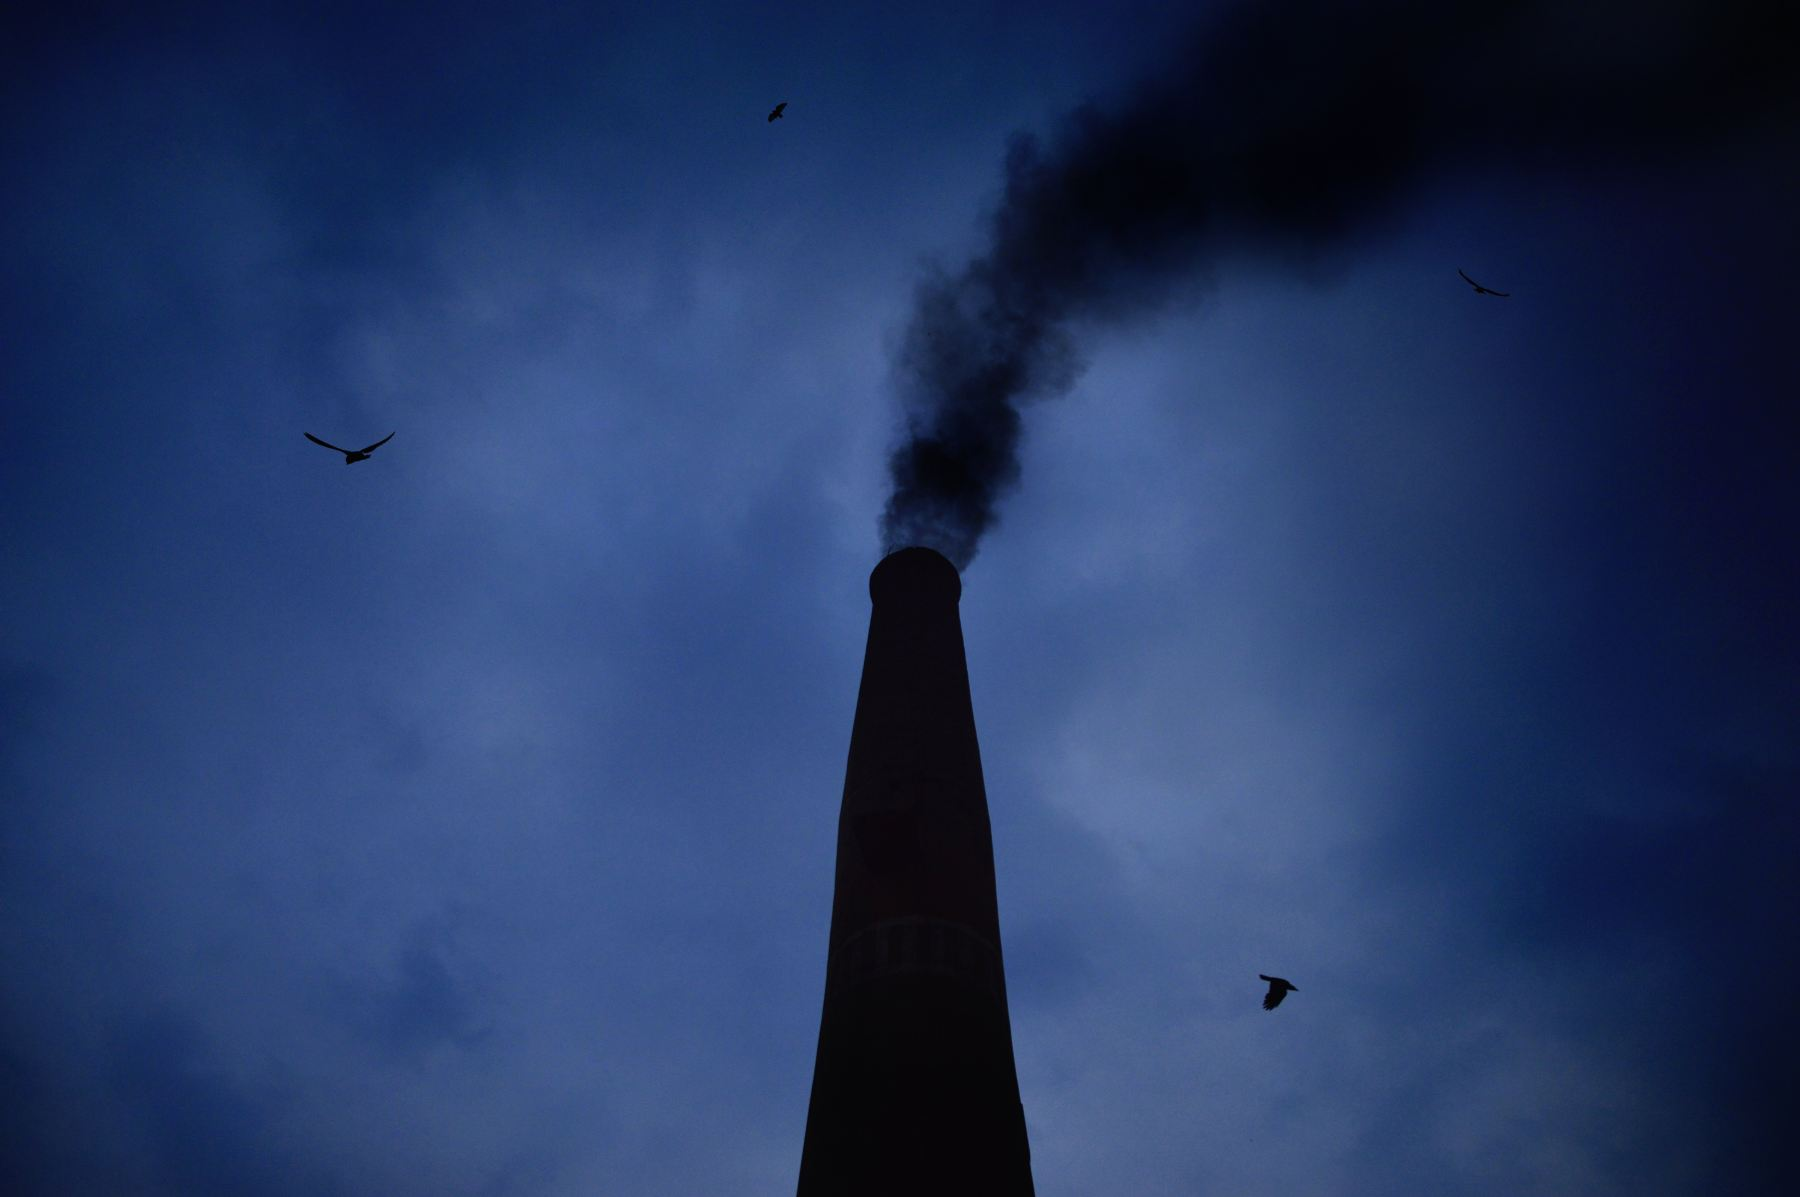 Incinerators in the US expose nearby residents to toxic pollutants